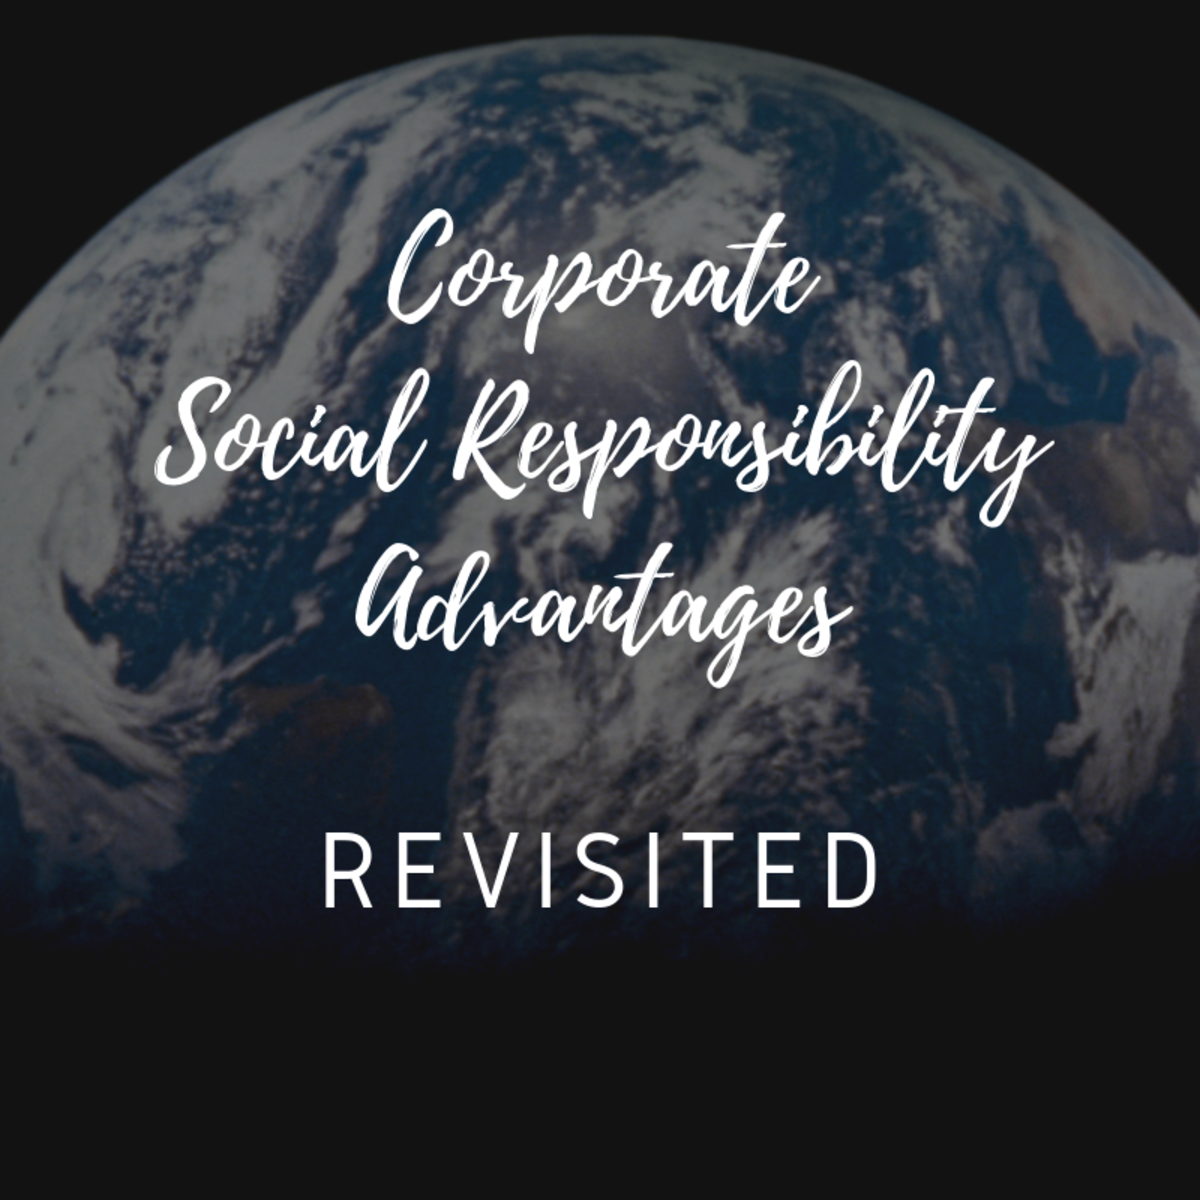 The Advantages of Corporate Social Responsibility:  Another Look